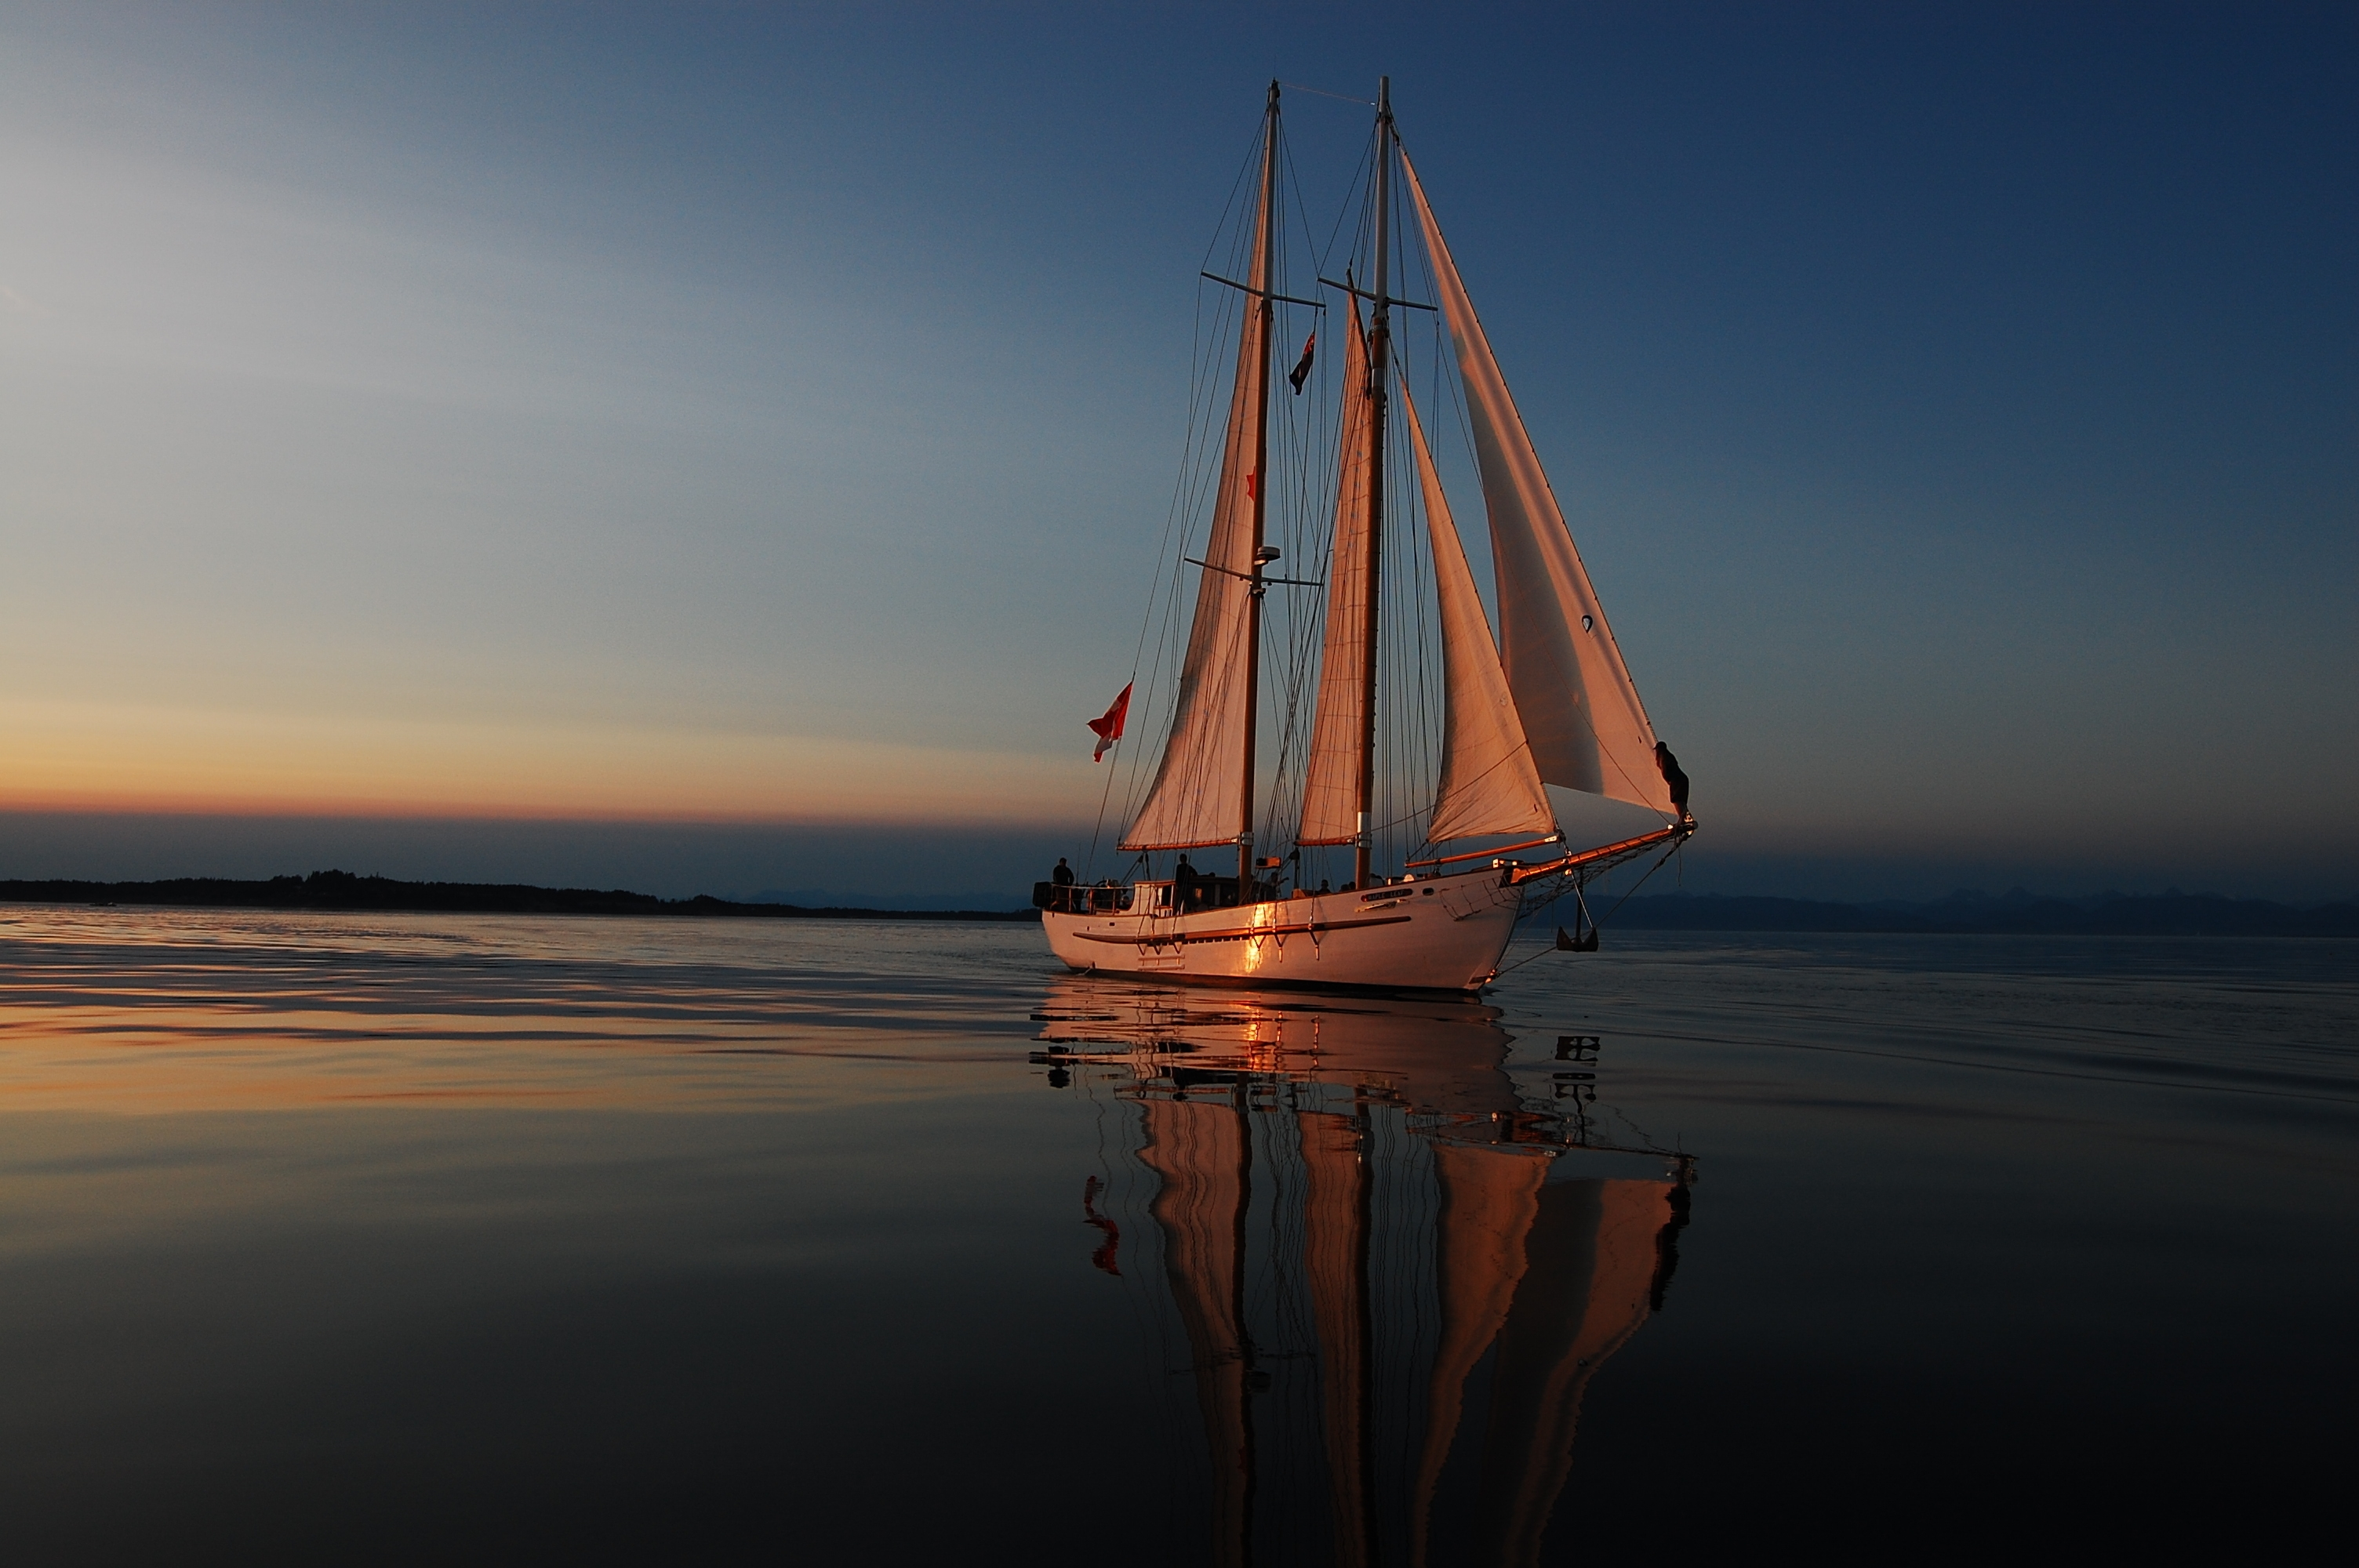 101636 download wallpaper Sea, Miscellanea, Miscellaneous, Journey, Relaxation, Rest, Evening, Sail, Sails, Yacht, Gleams Of The Sunset, Reflections Of The Sunset screensavers and pictures for free